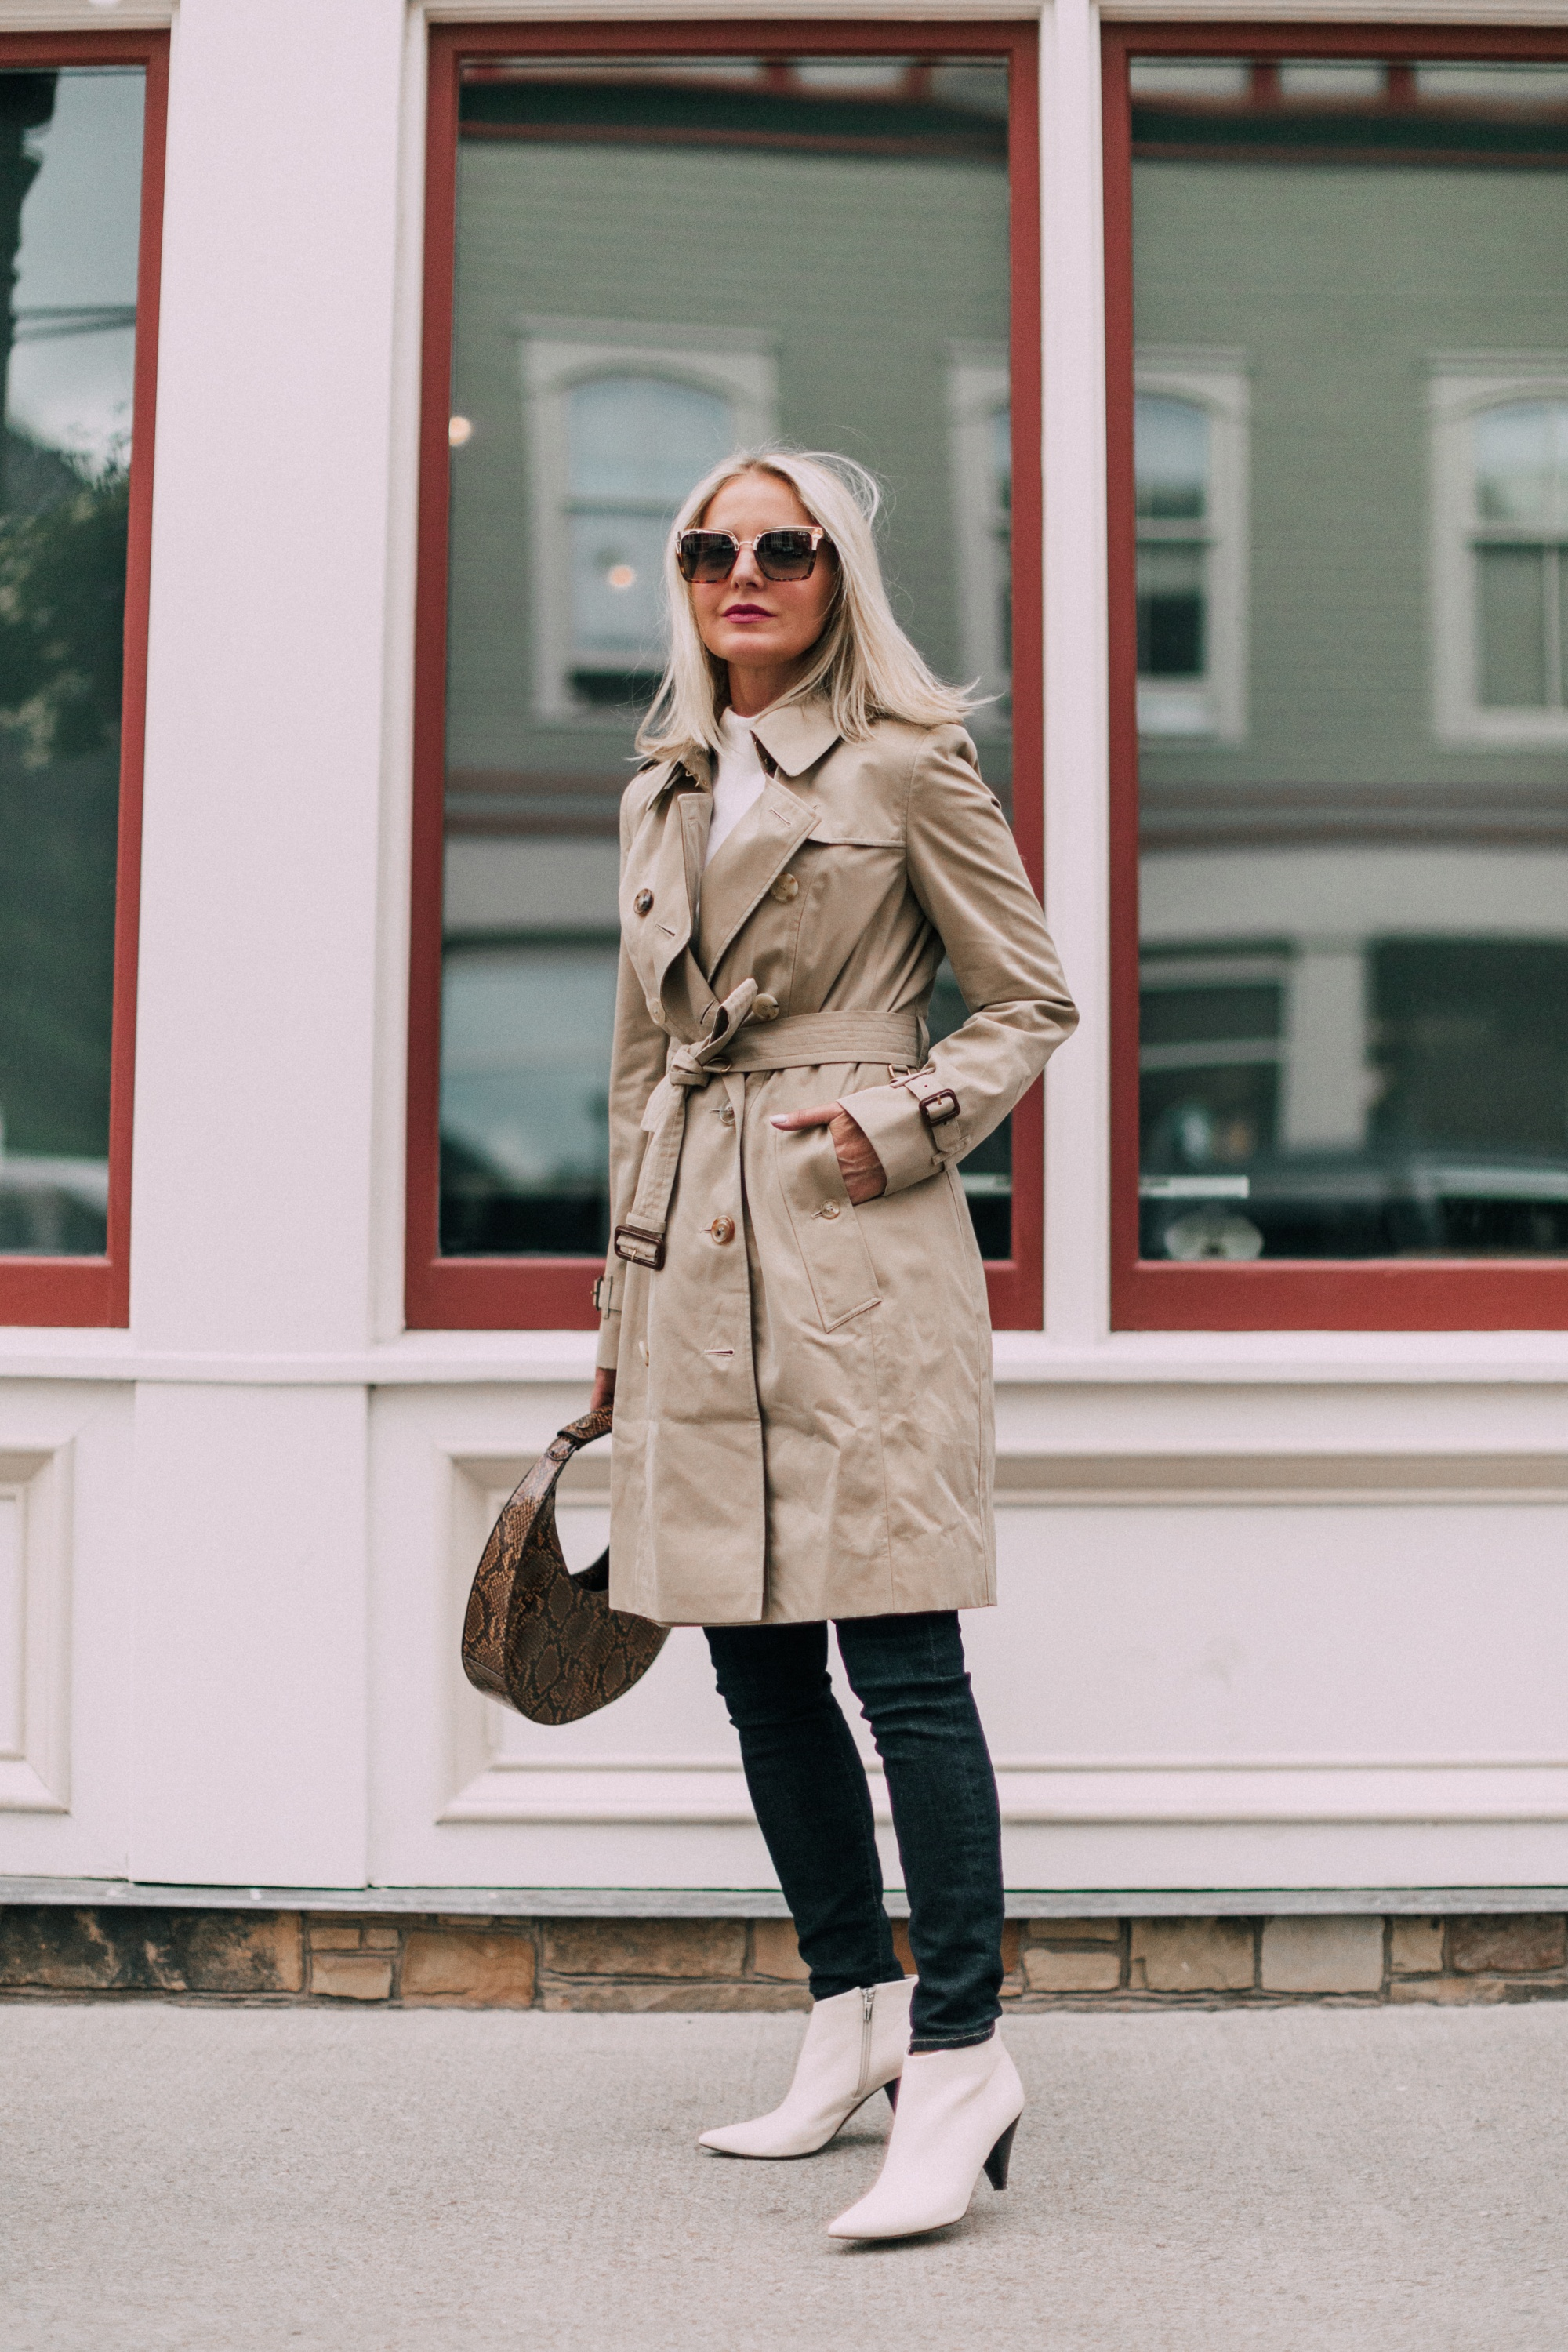 Burberry Chelsea Slim Fit Heritage dark honey trench coat with white booties blue jeans outfit